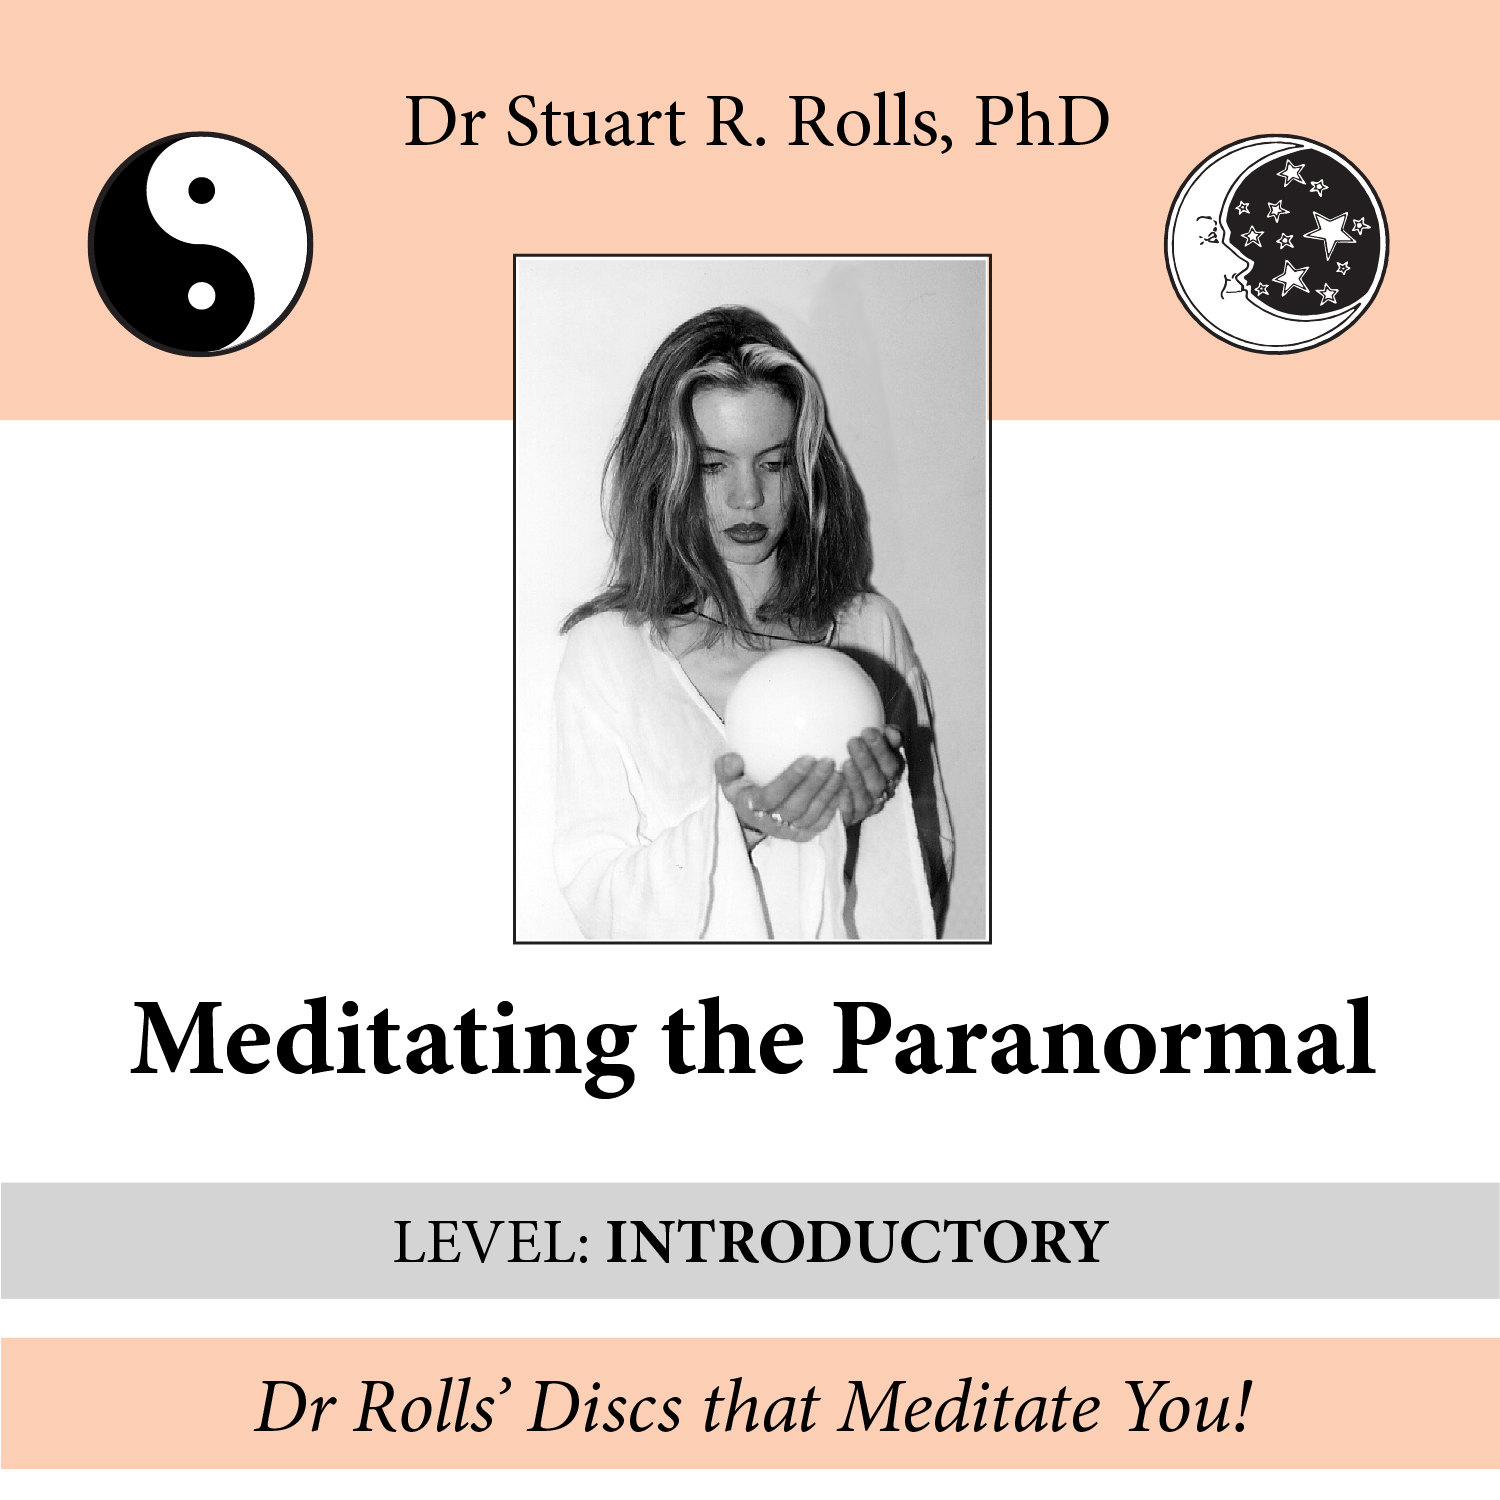 Meditating the Paranormal (Introductory Level)